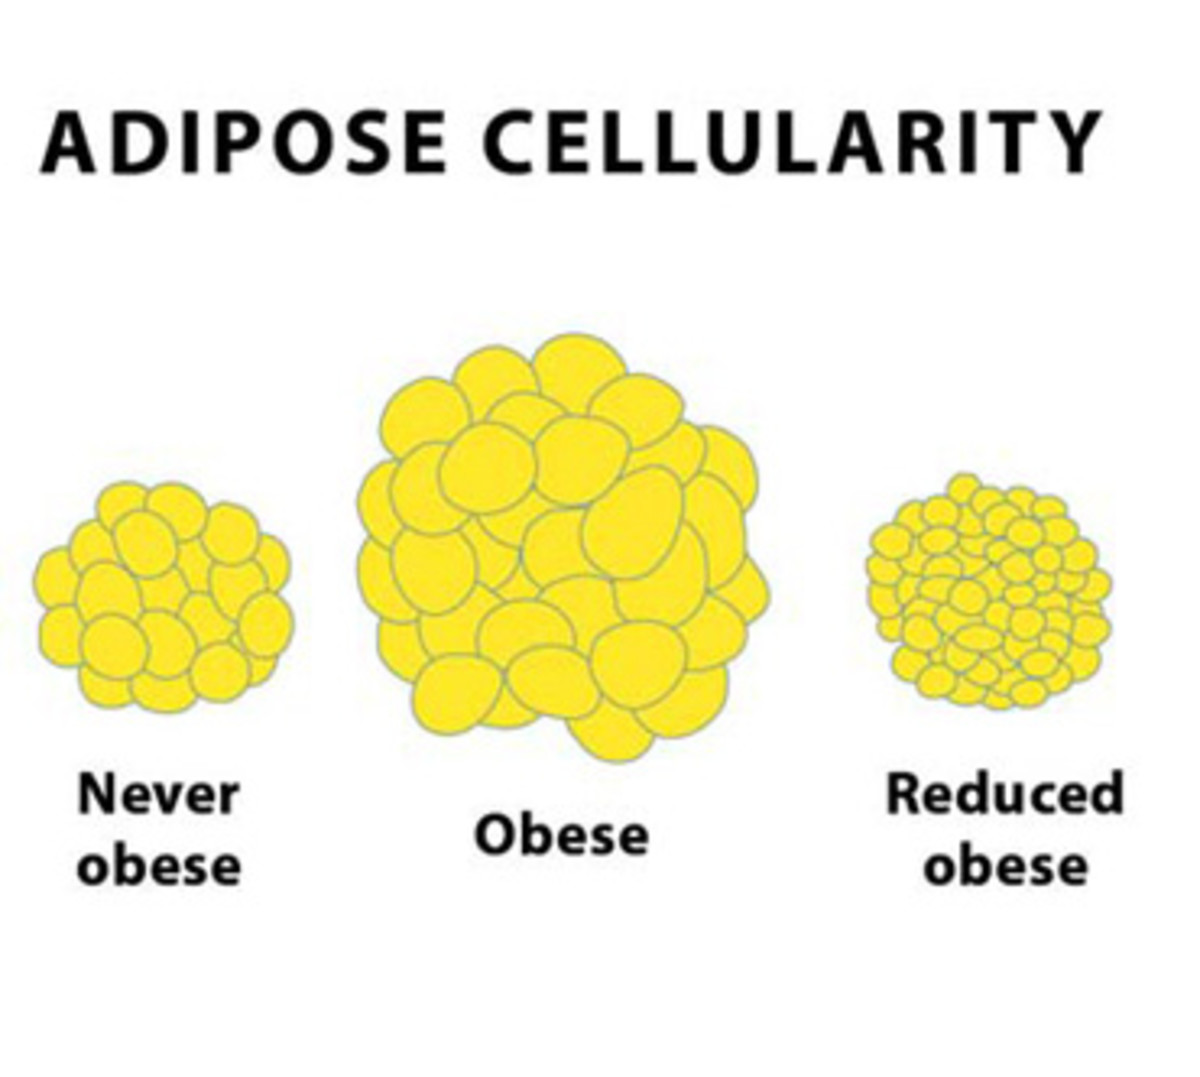 And example of fat cells.  Notice how, after obese, the number of cells remains high.  However, by shrinking the fat cells, they can take up just a little space as the never obese example.